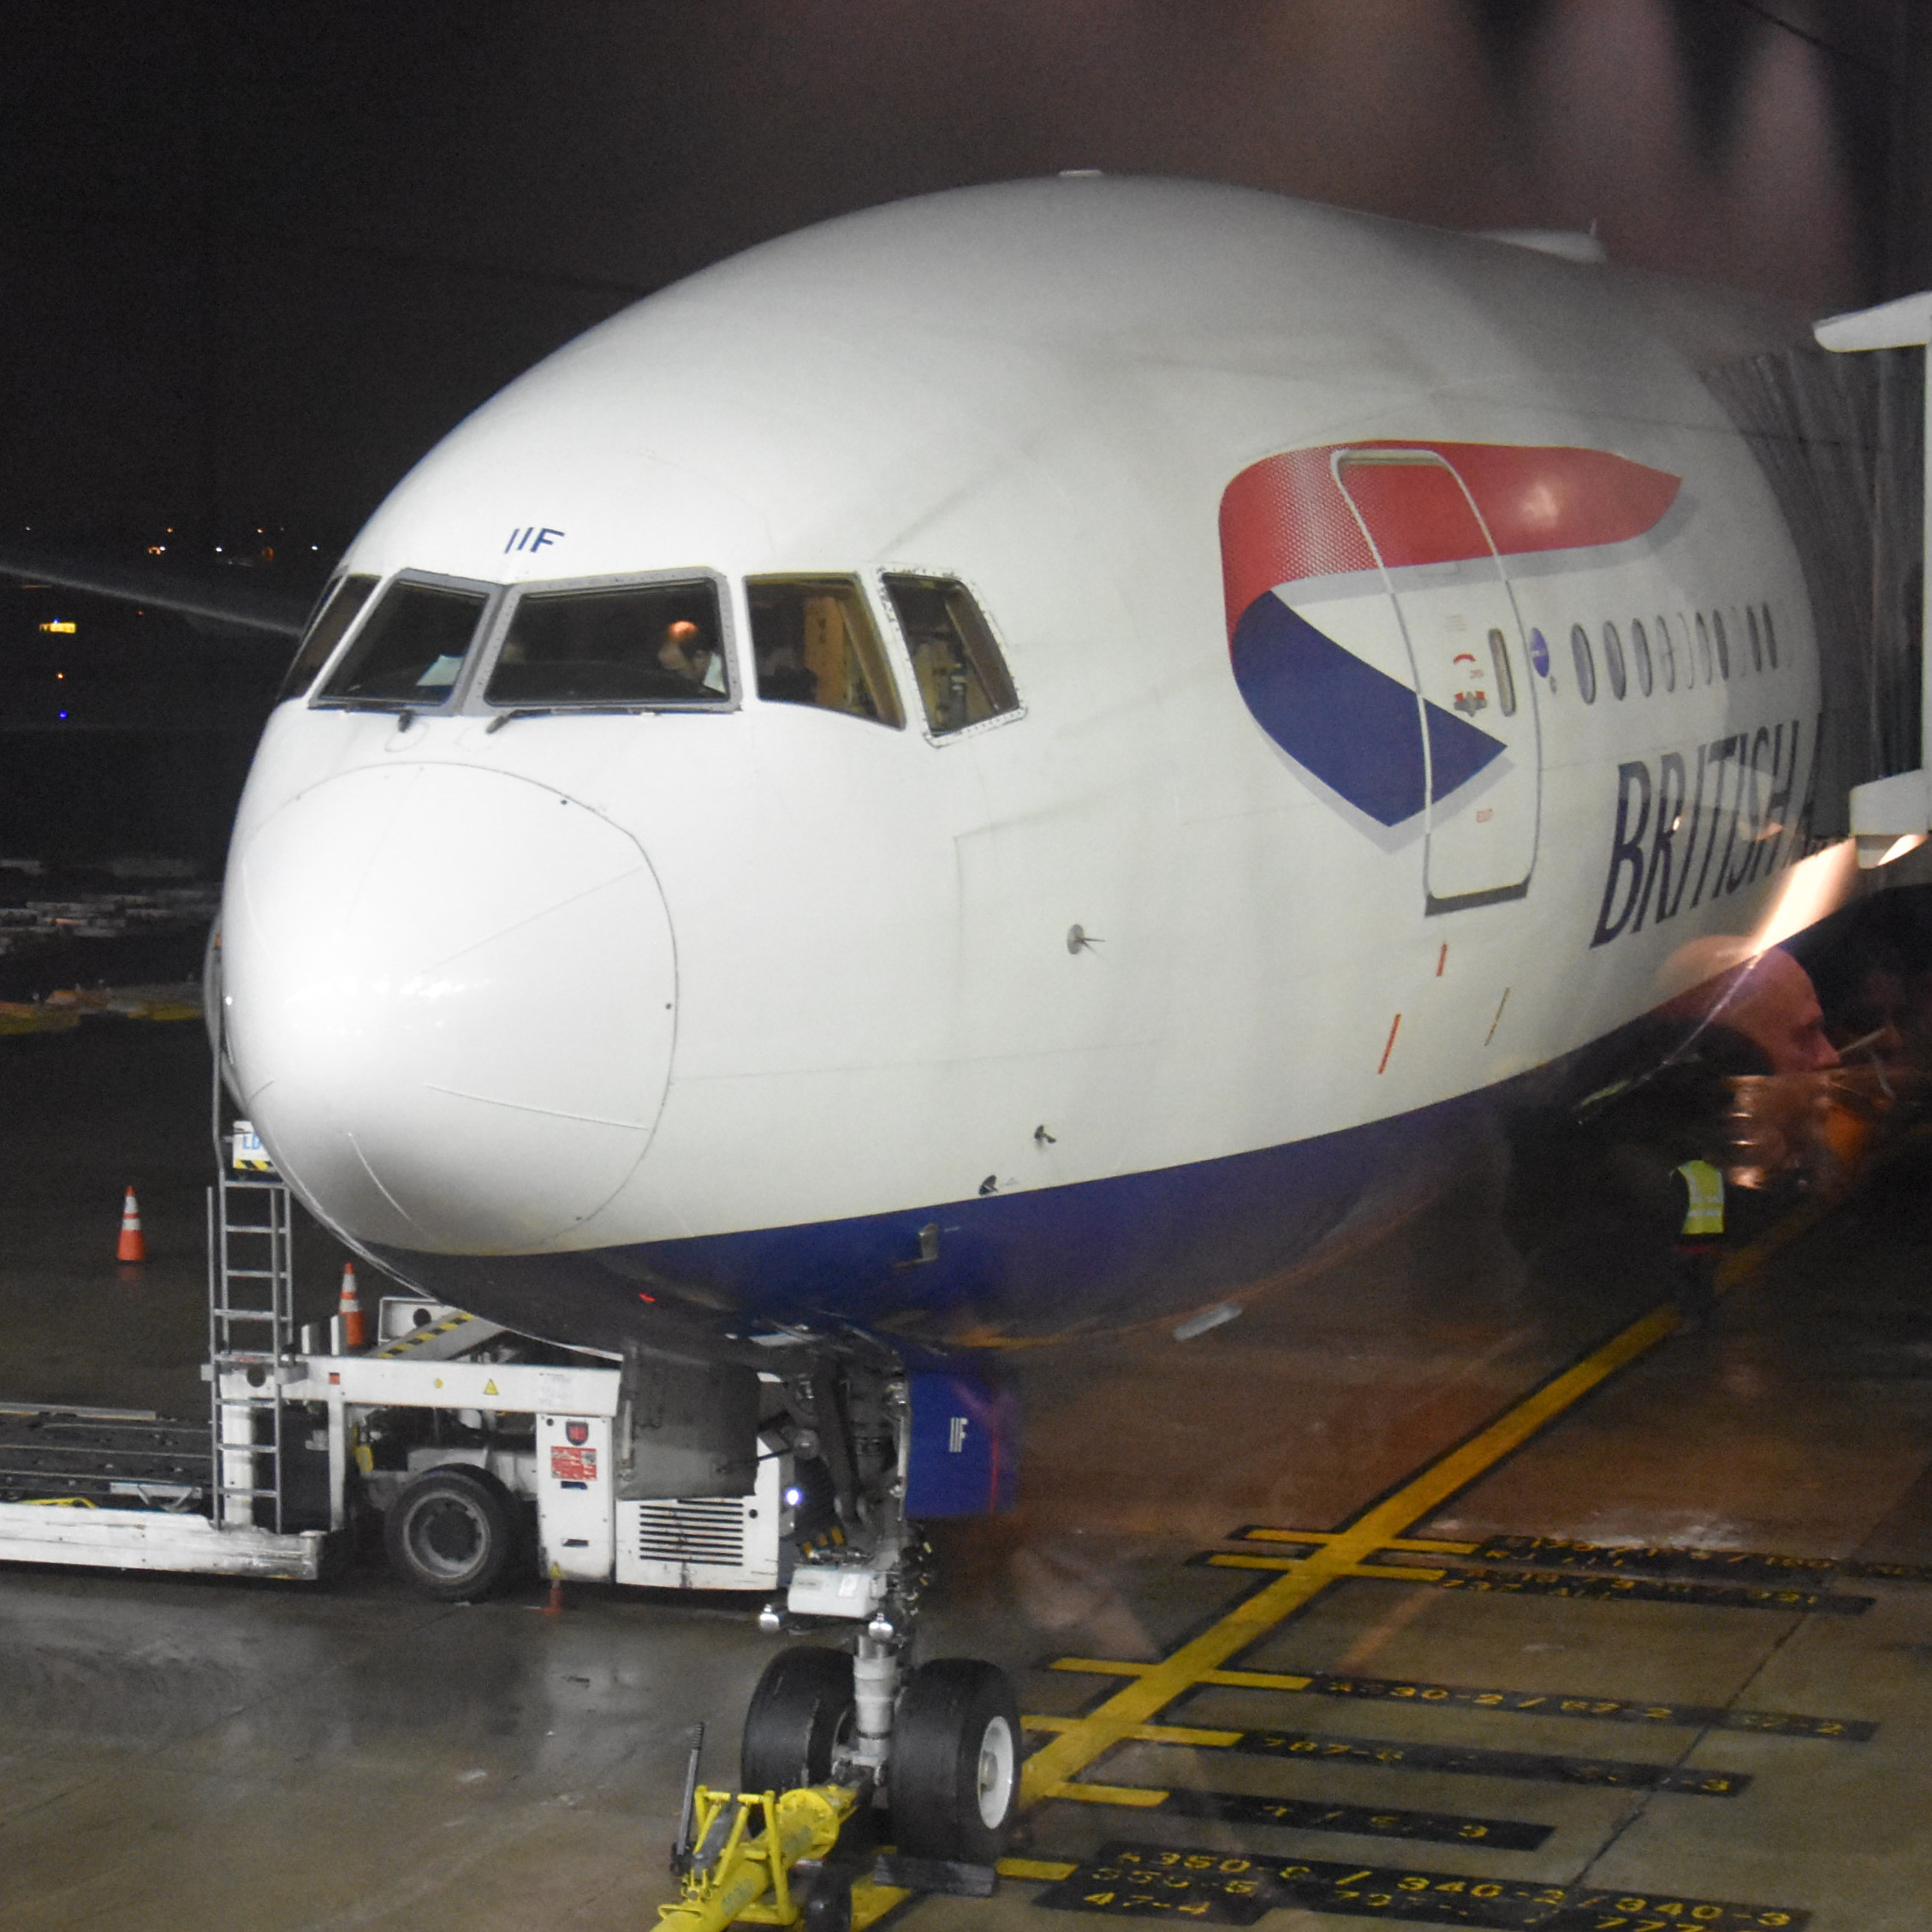 My British Airways Boeing 777-200 on the stand at Chicago O'Hare airport, waiting to take me back to the UK.